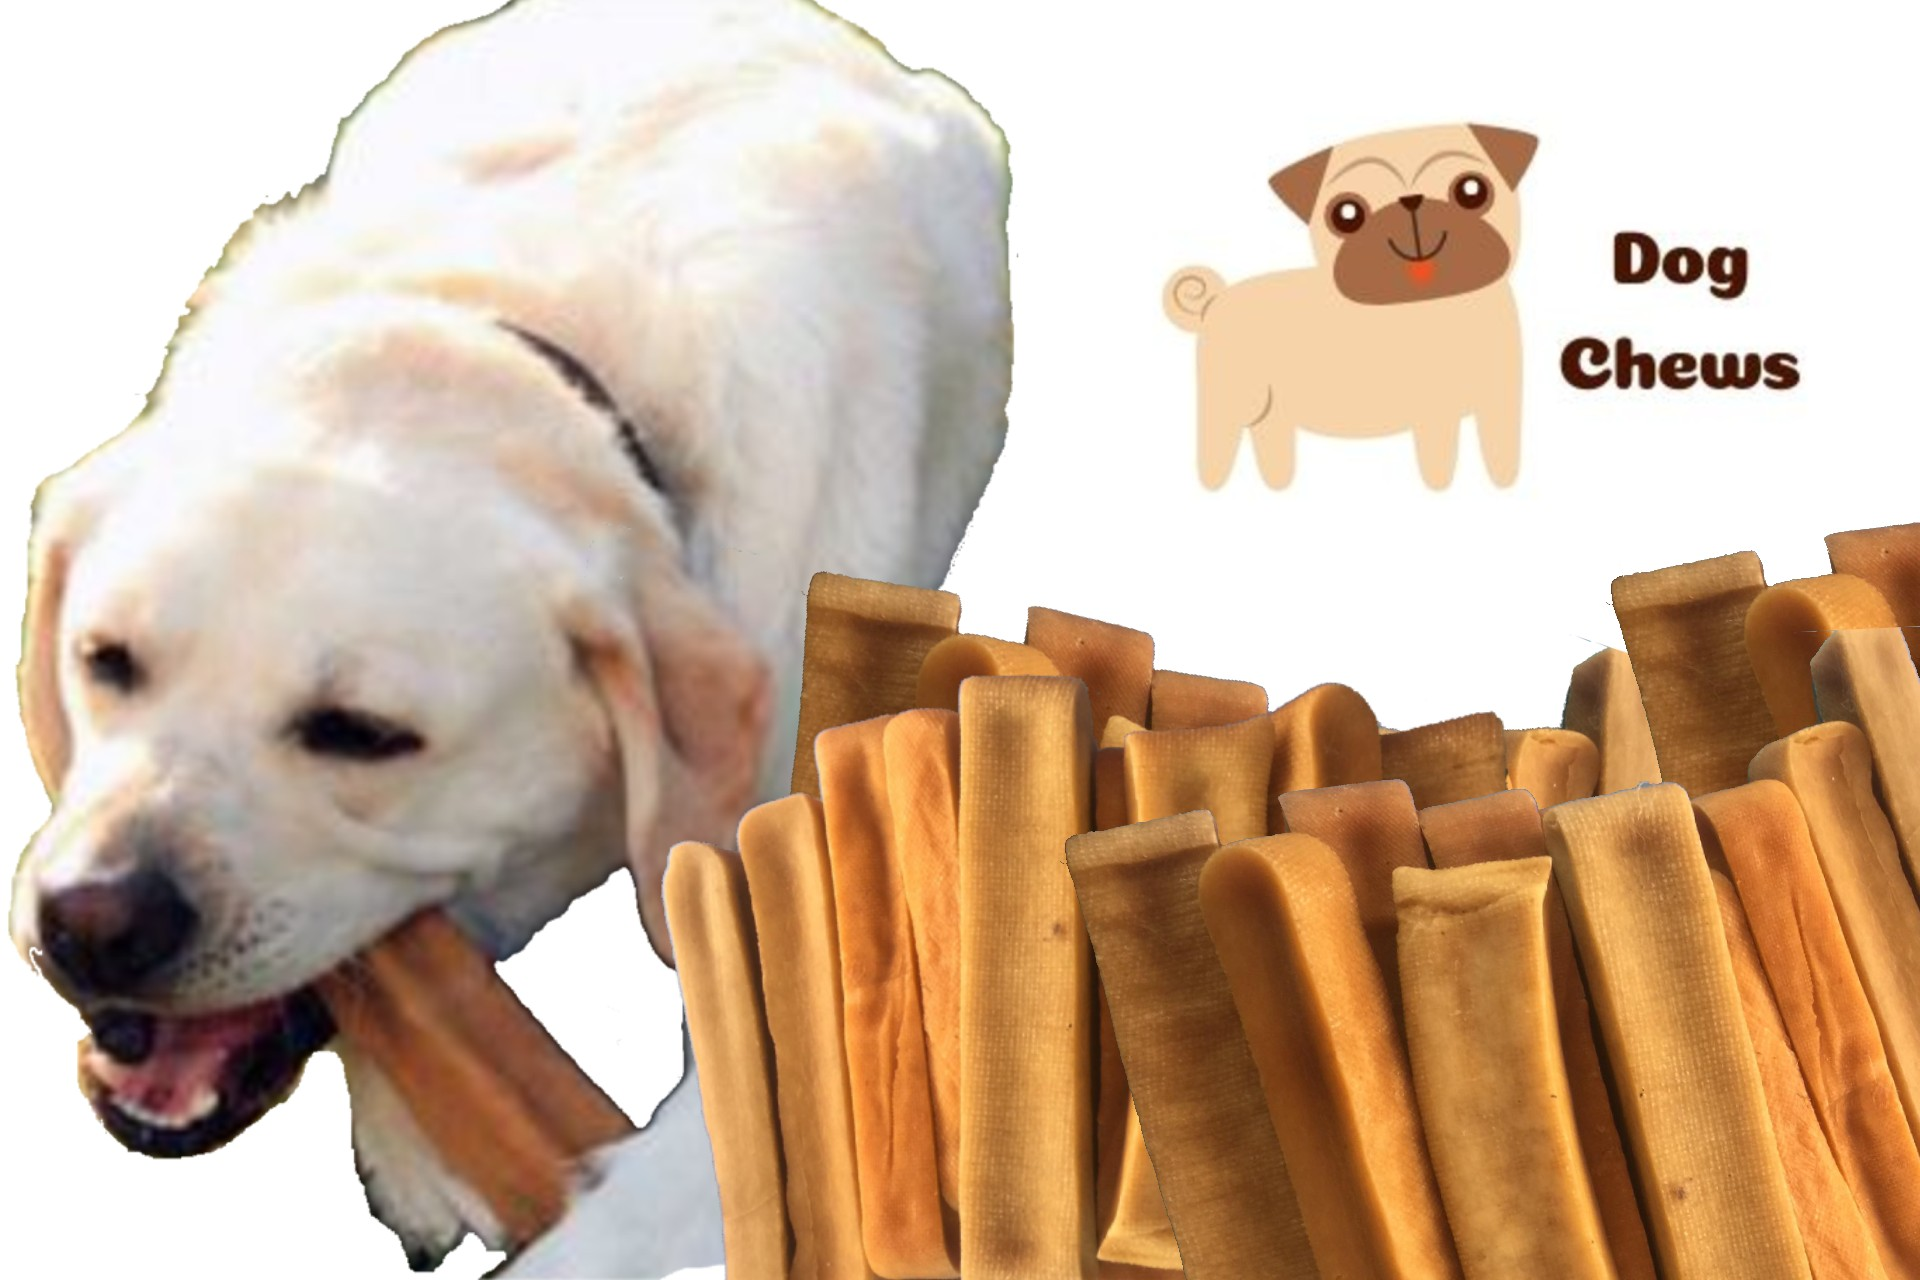 Nepalese Dog chew sticks